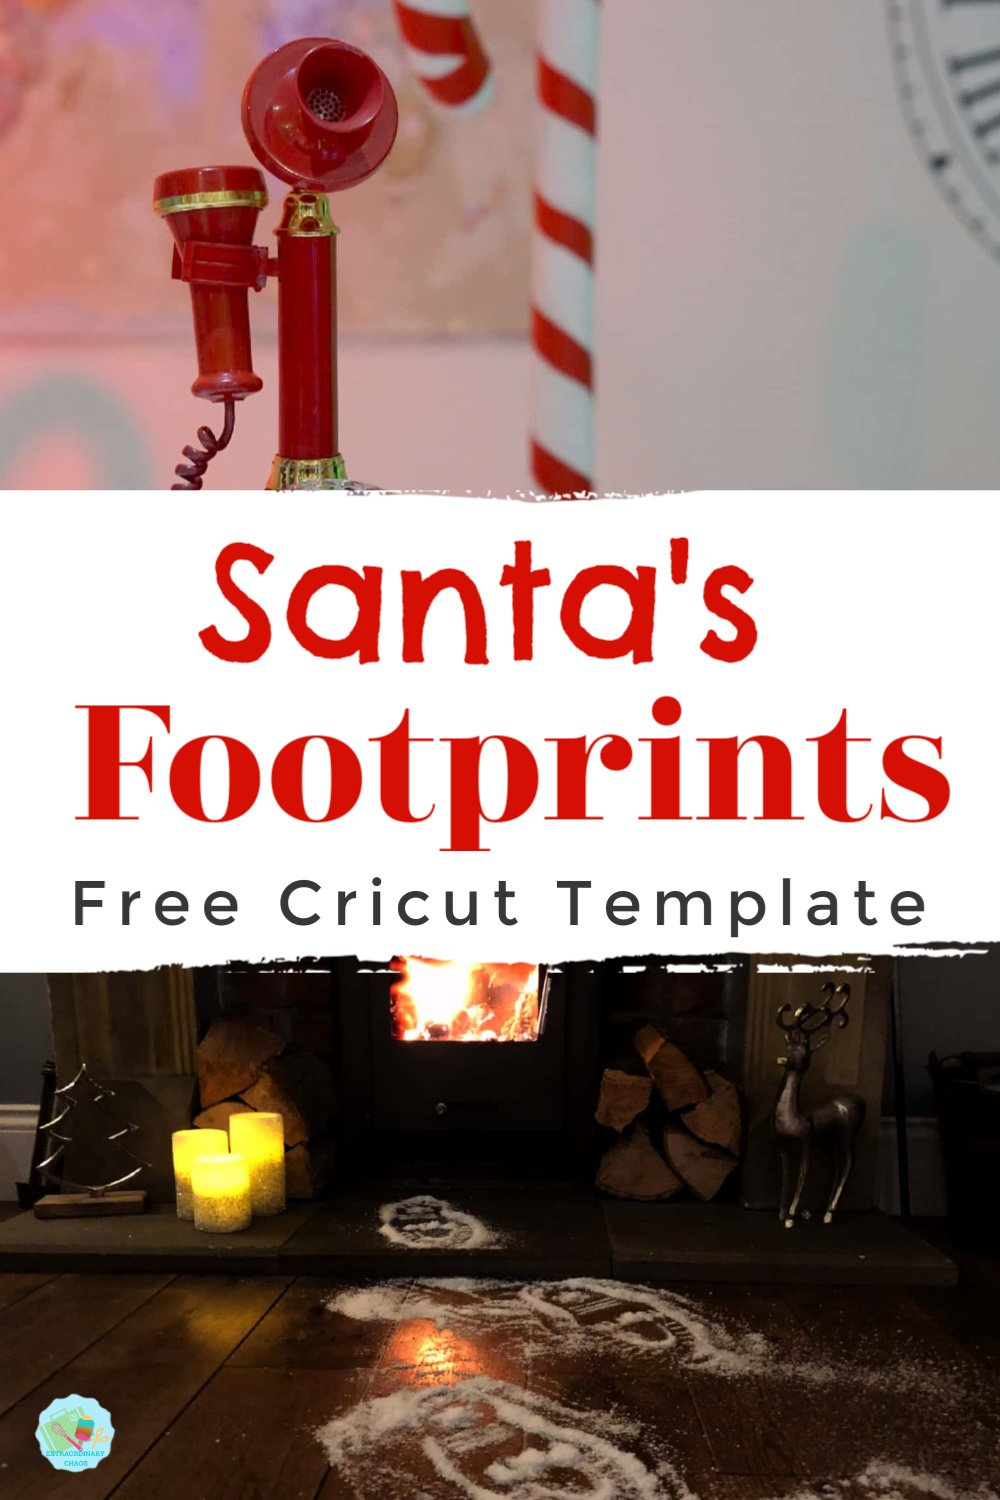 Santas Footprints Free Cricut Template